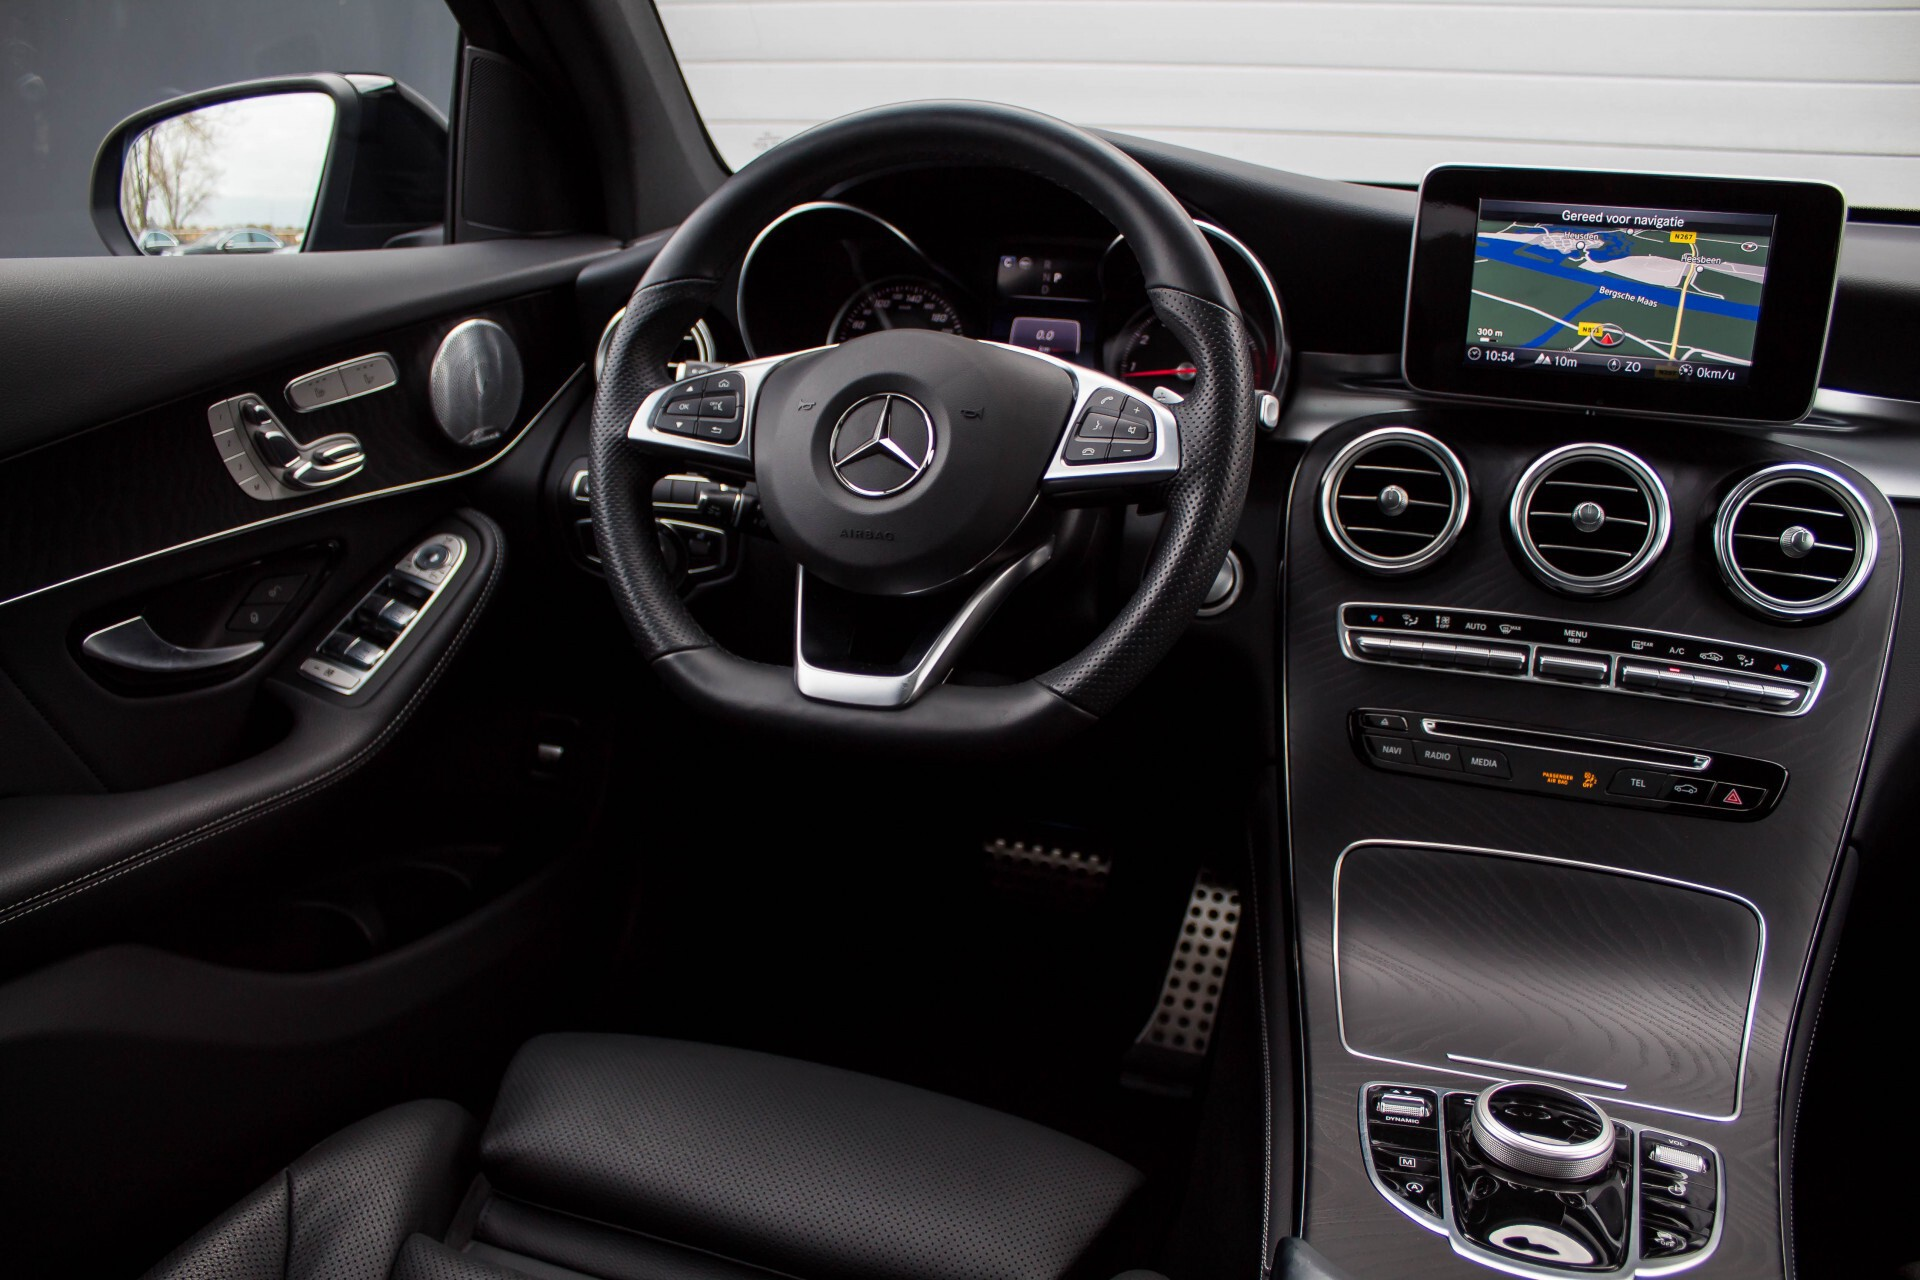 Mercedes-Benz GLC-Klasse 300 4-M AMG Panorama Distronic/Keyless/Burmester/Memory/Night Aut9 Foto 6